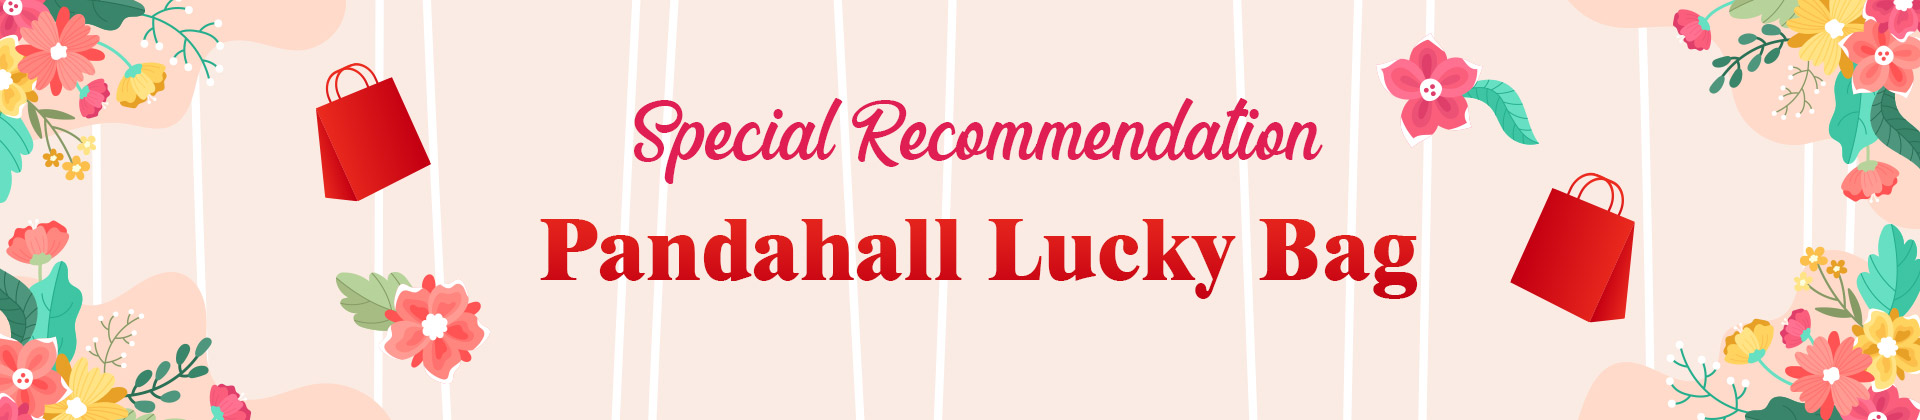 Special Recommendation Pandahall Lucky Bag